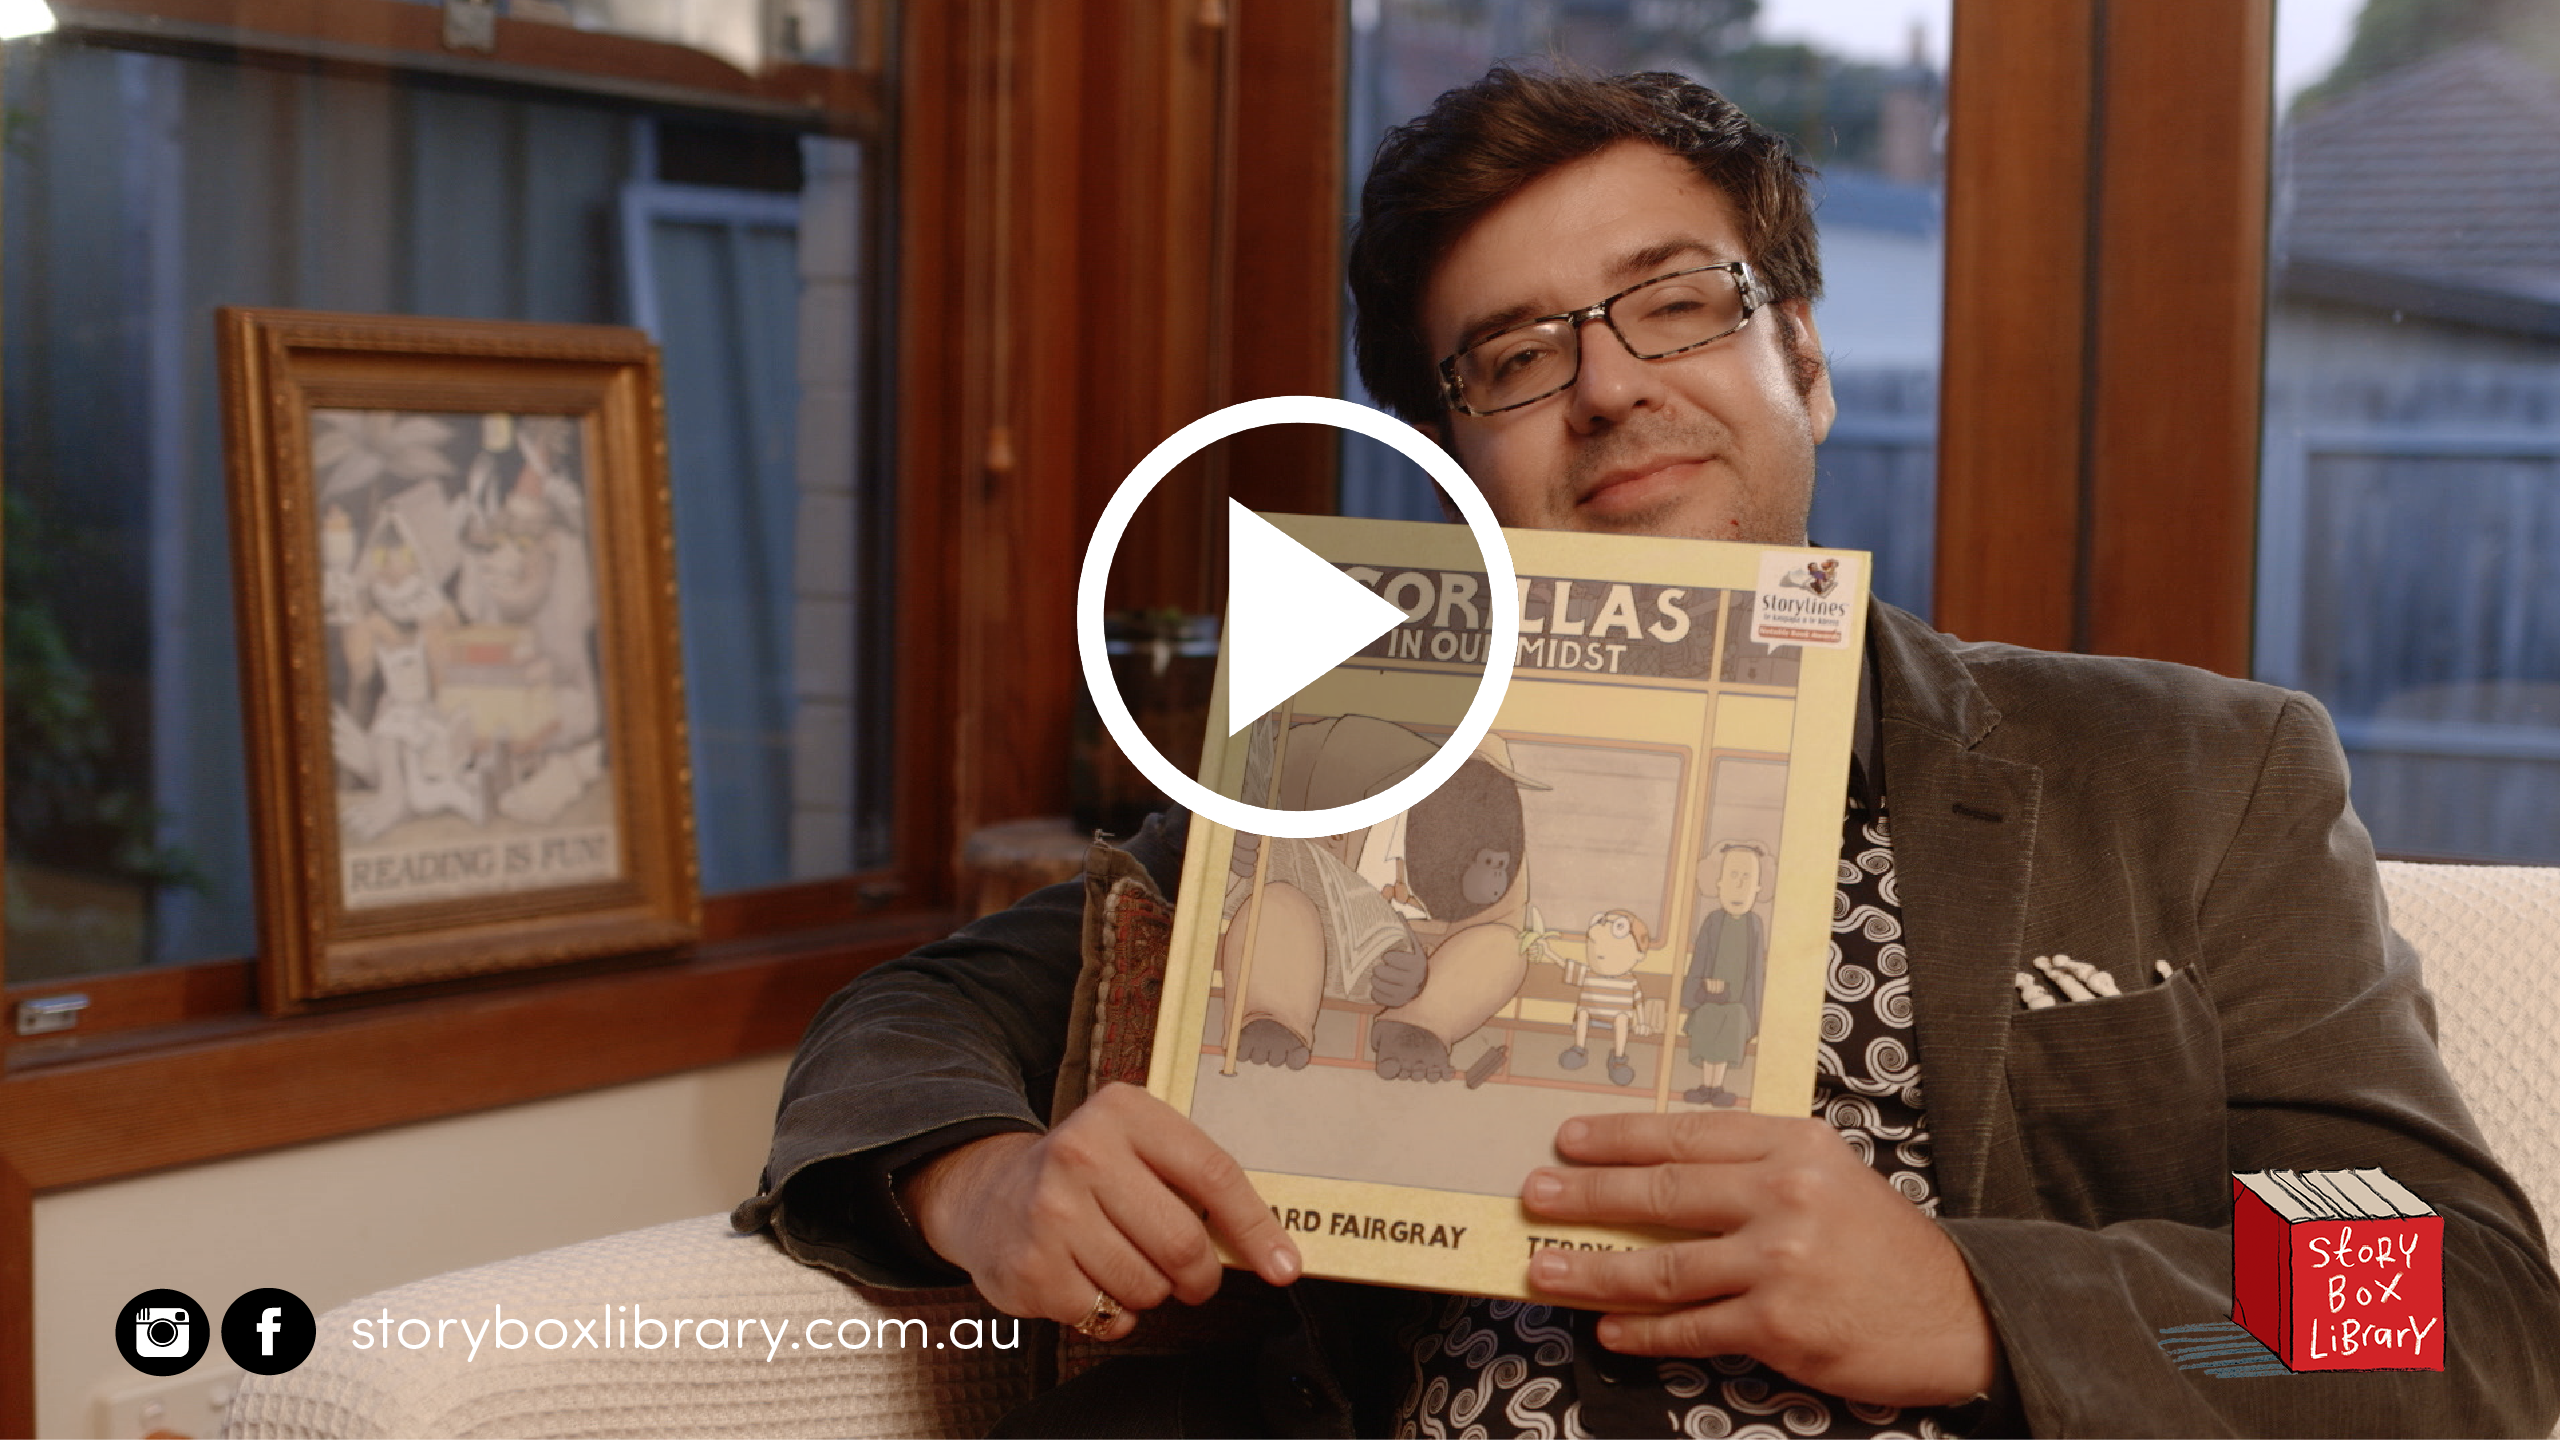 Gorillas in Our Midst, read by Richard Fairgray